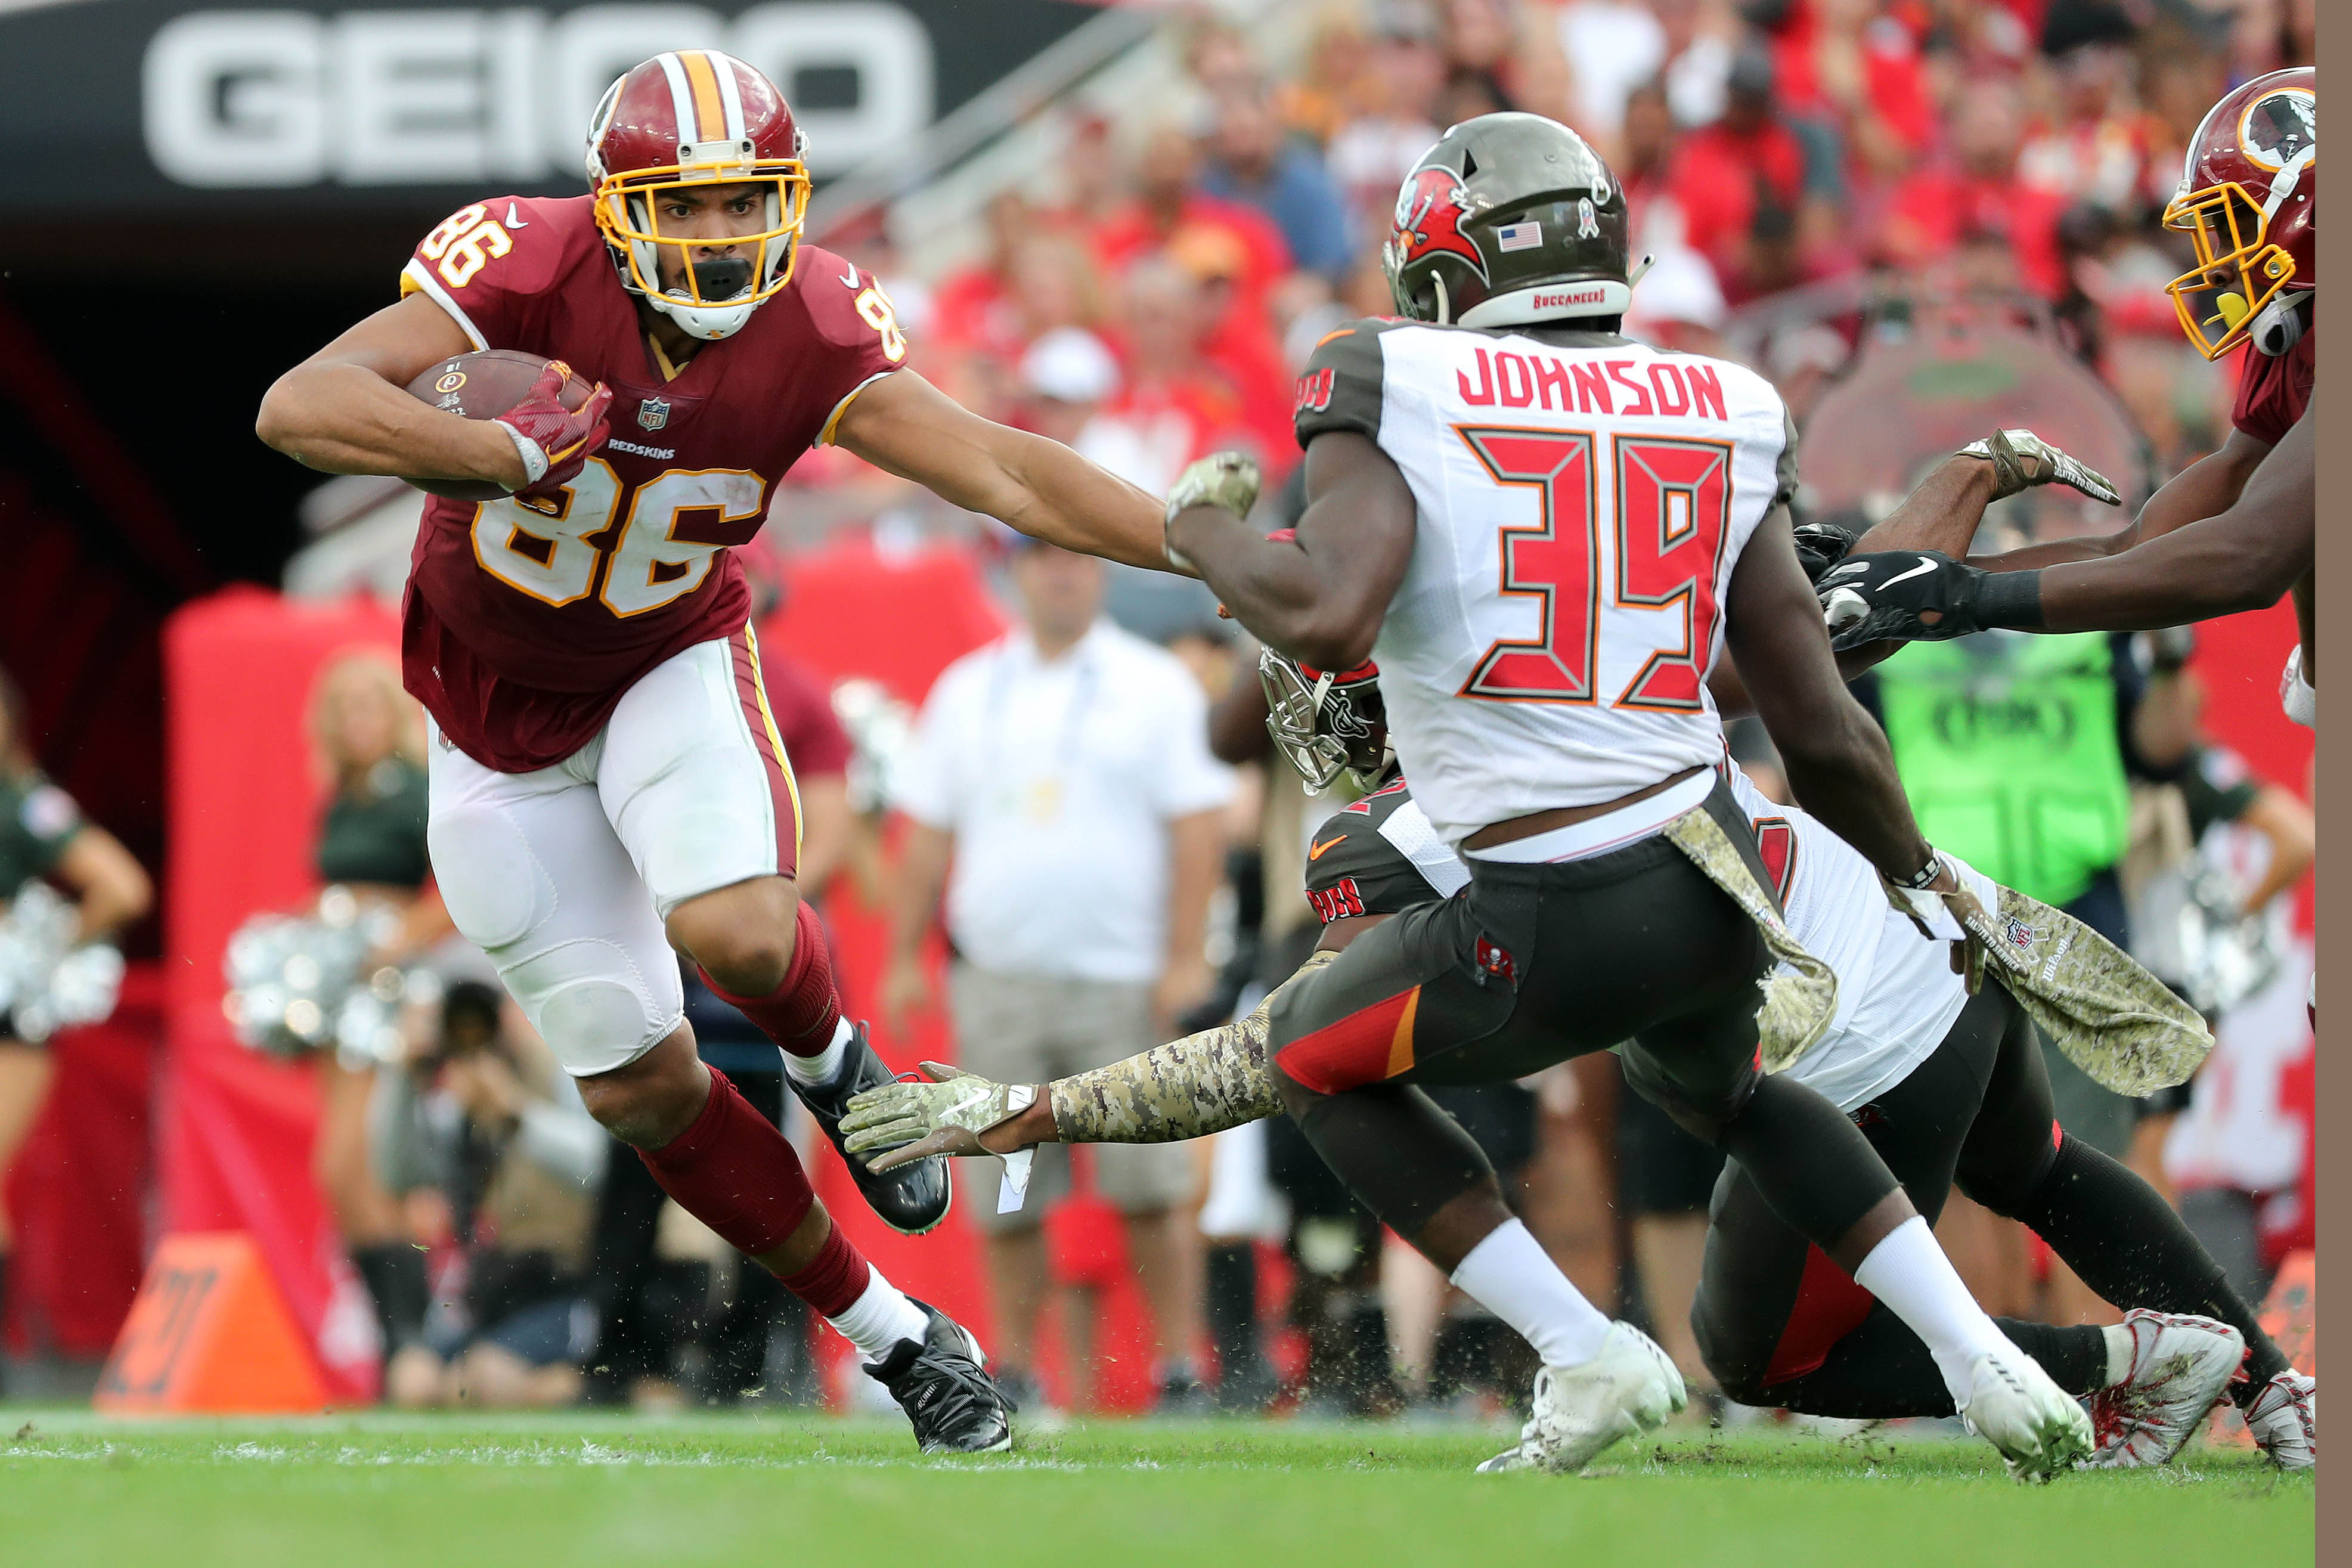 Should the Jaguars Consider Adding Jordan Reed to Replenish the Tight End Room?